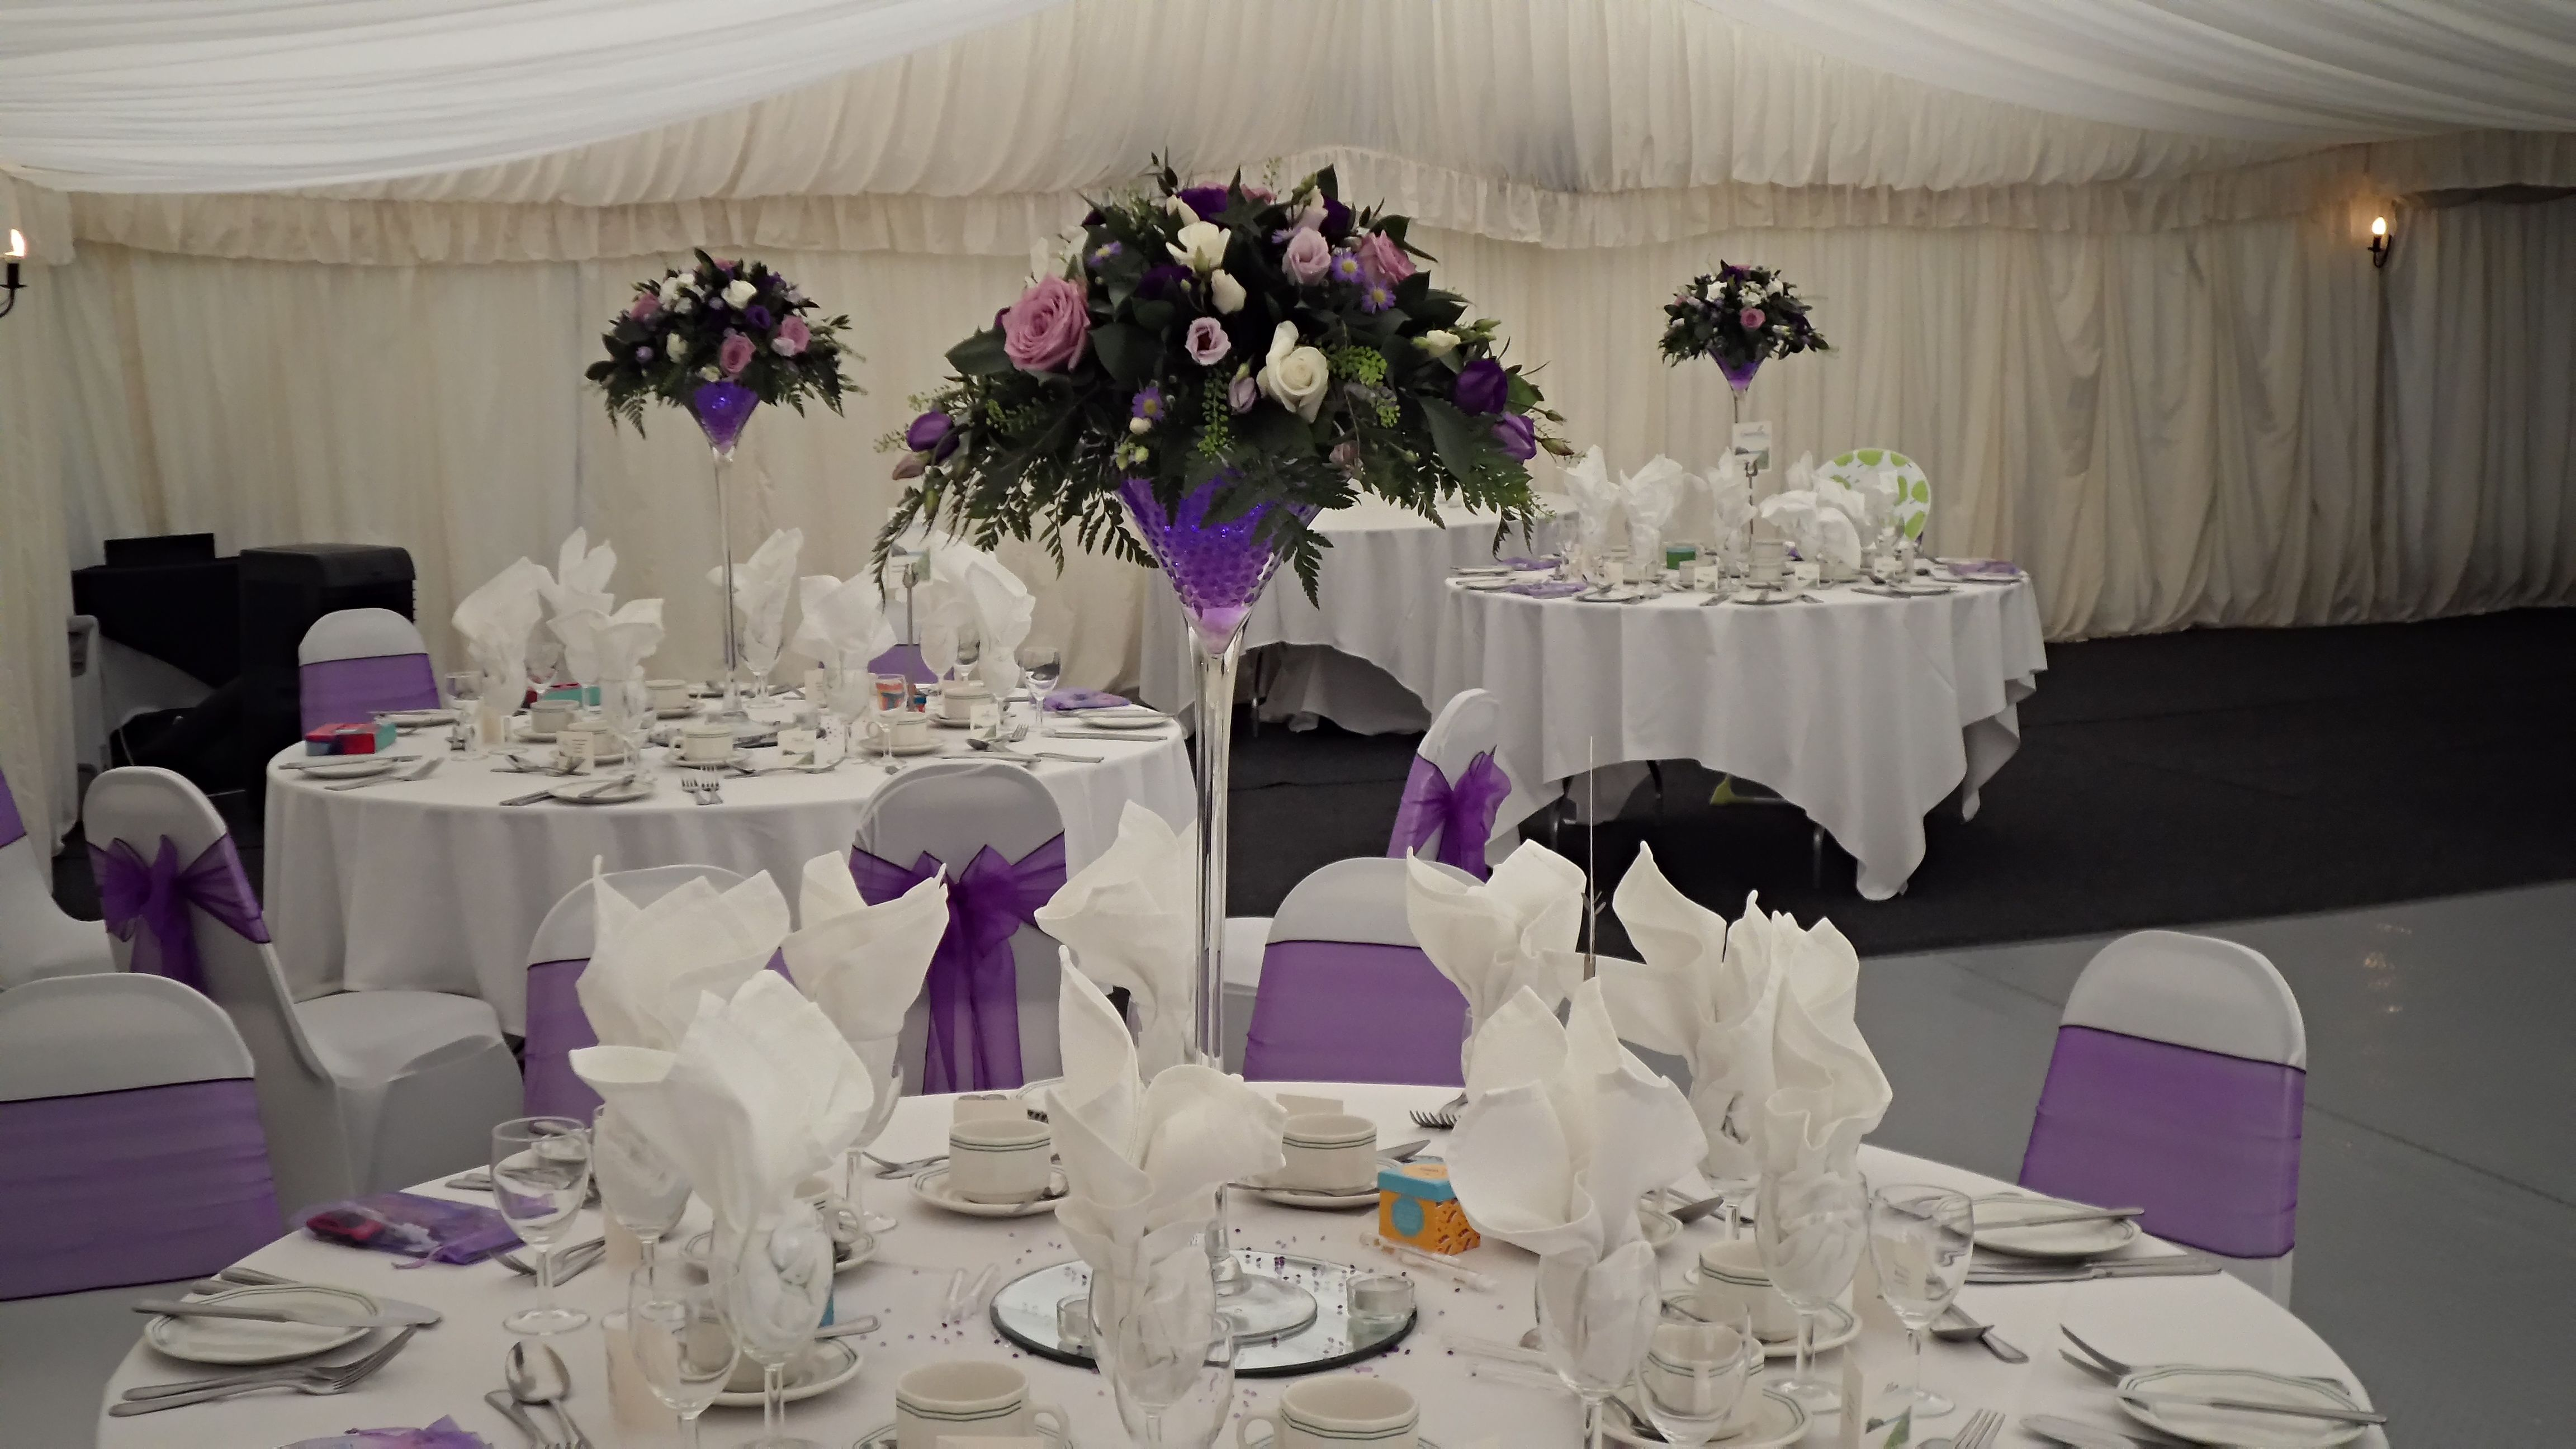 Martini Glass Table Centre Pieces In Purple, Lilac And White